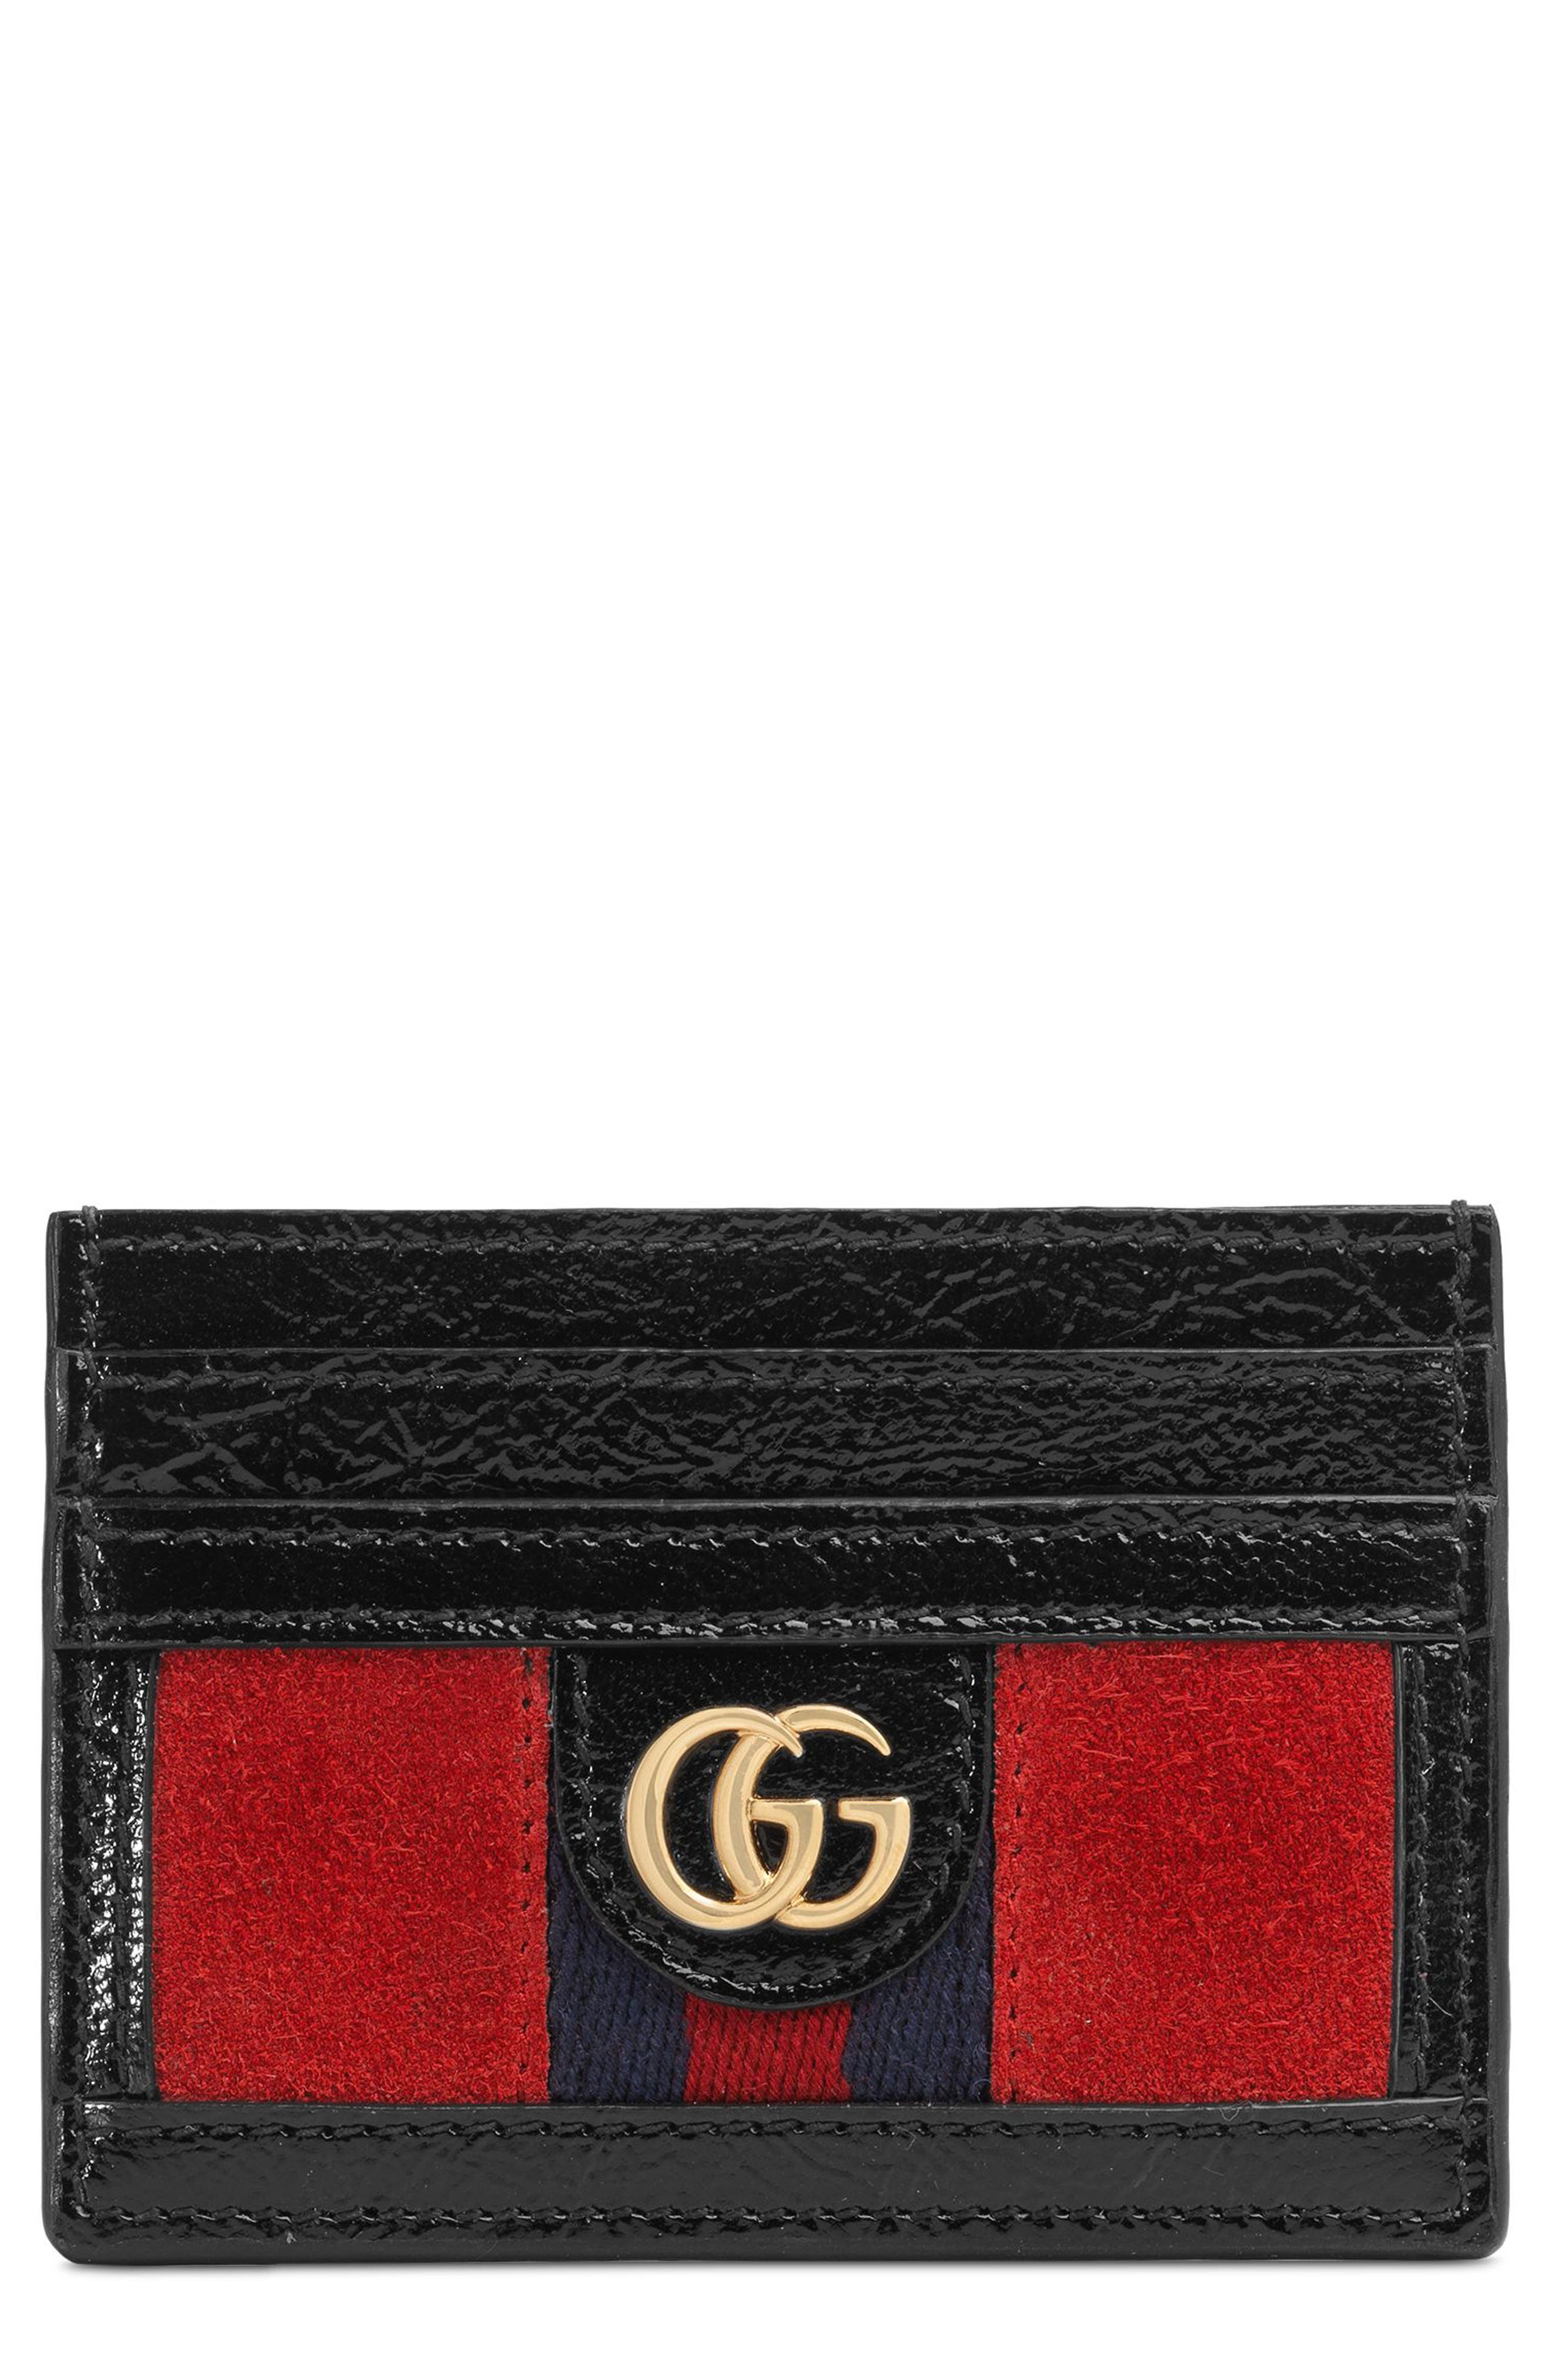 Ophidia Suede Card Case,                         Main,                         color, Hibiscus Red/ Nero/ Blue